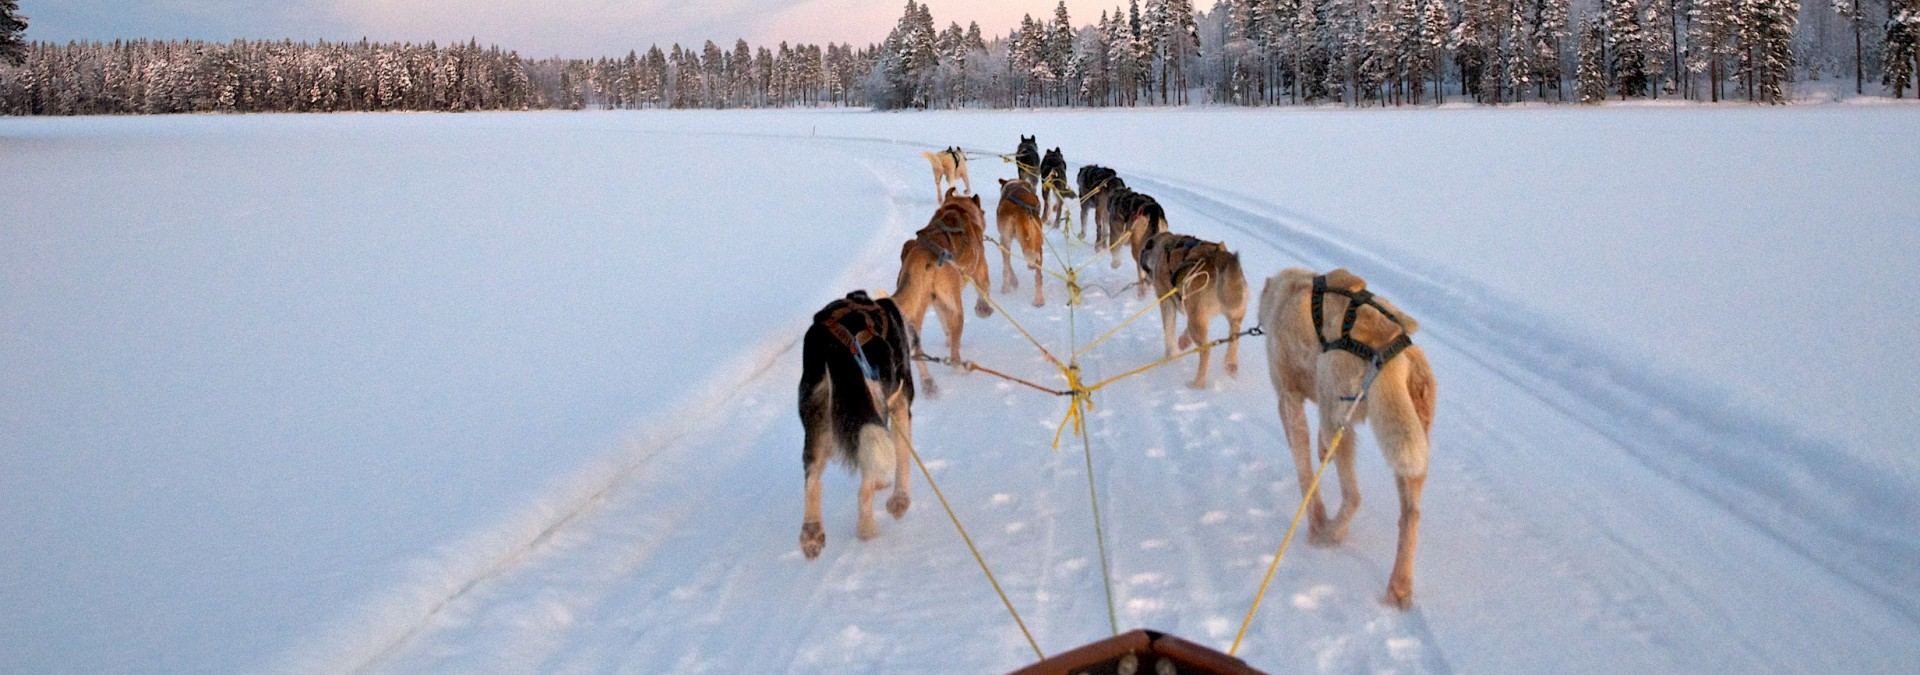 Dogsledding-Graeme-Richardson-17.jpg